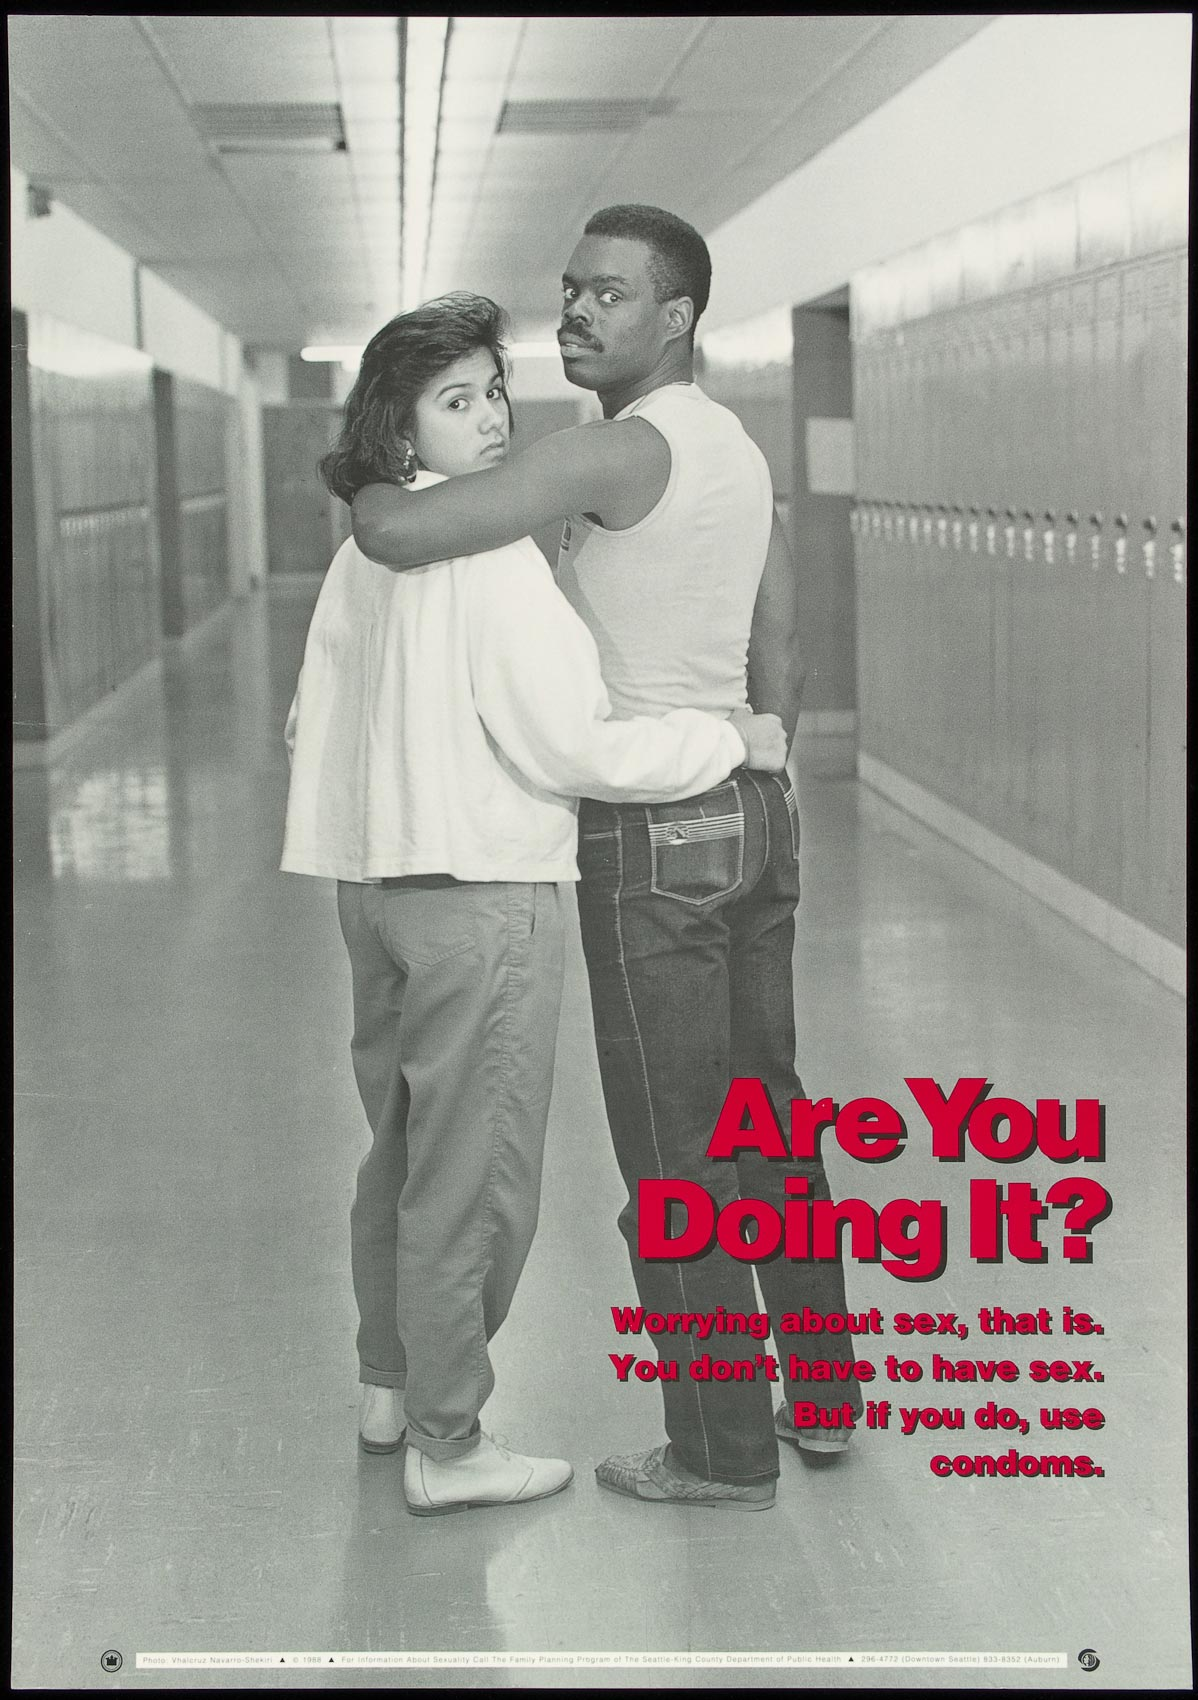 A 1988 poster produced by the Seattle-King County Dept. of Public Health